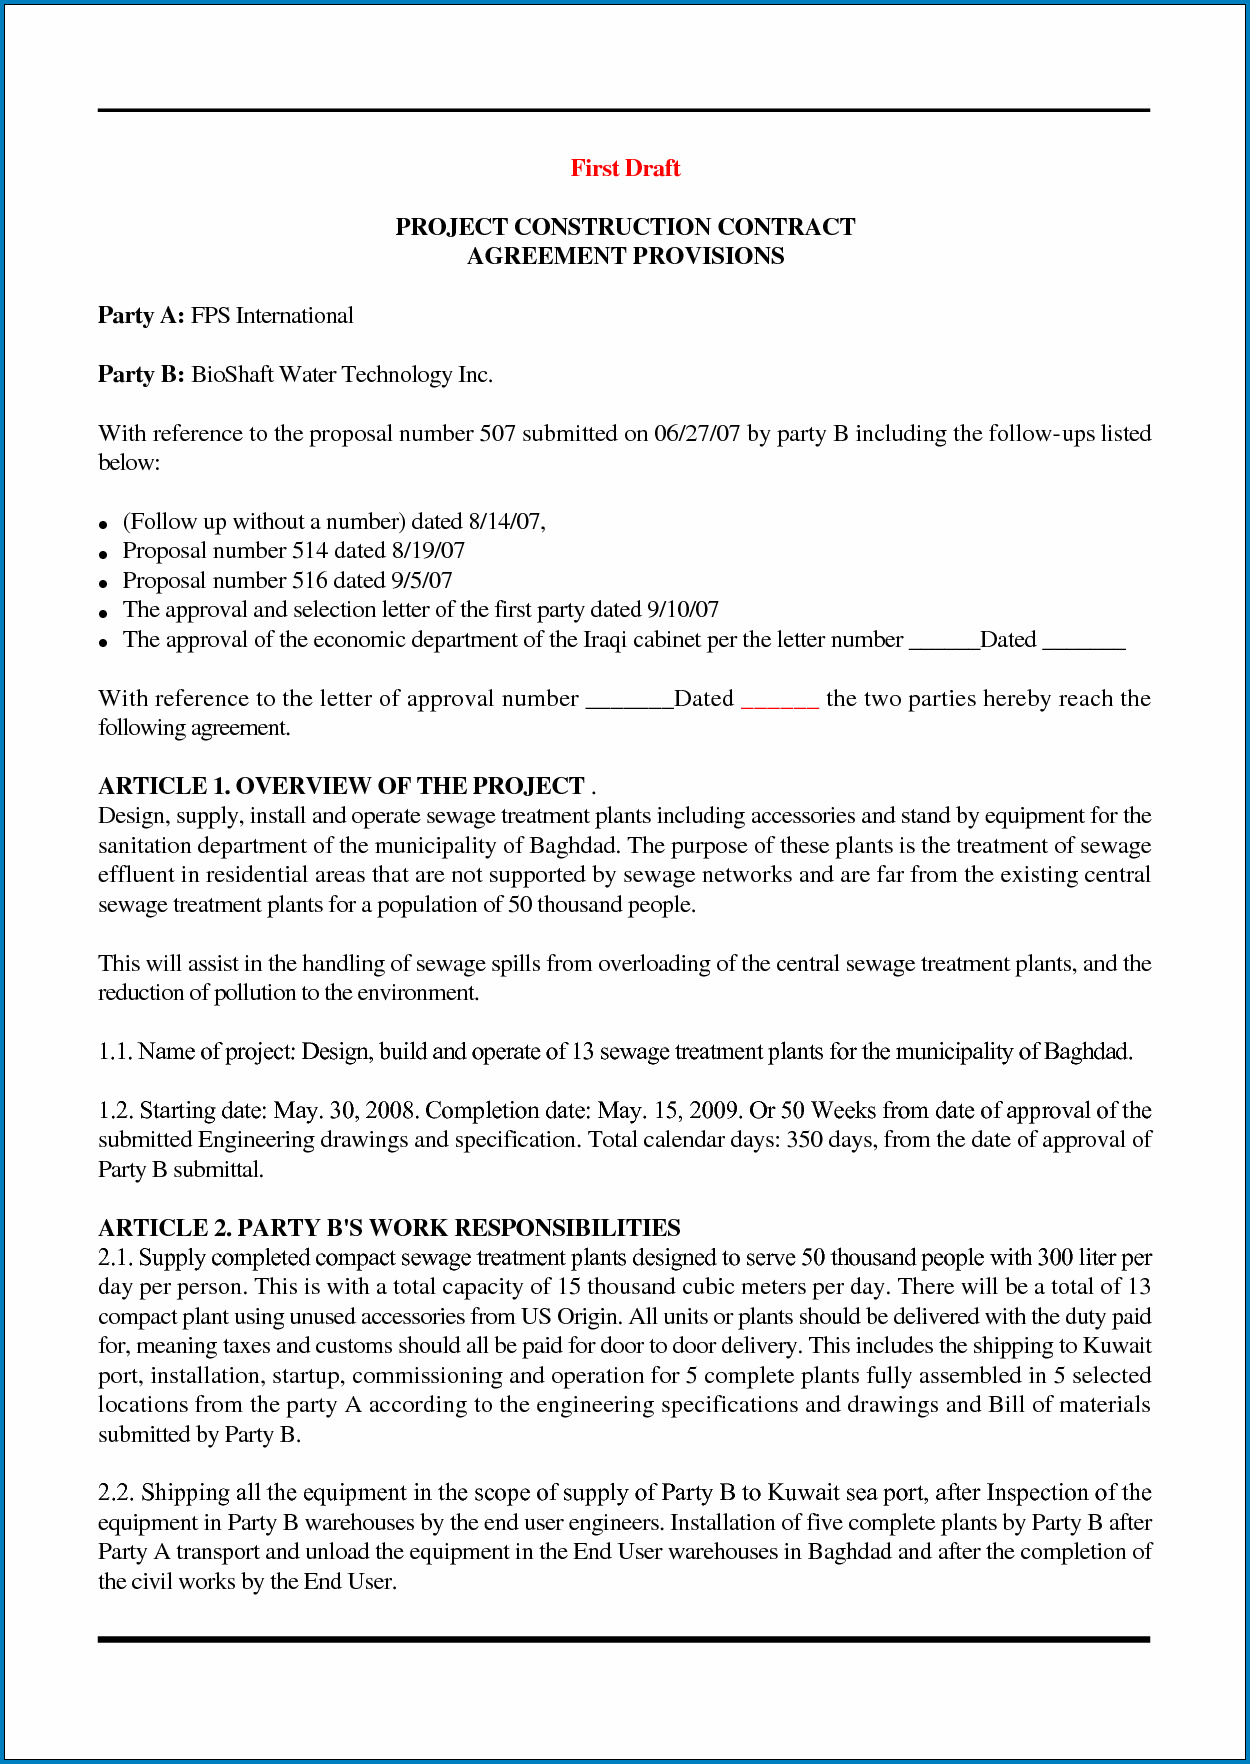 Contract Agreement For Construction Work Sample